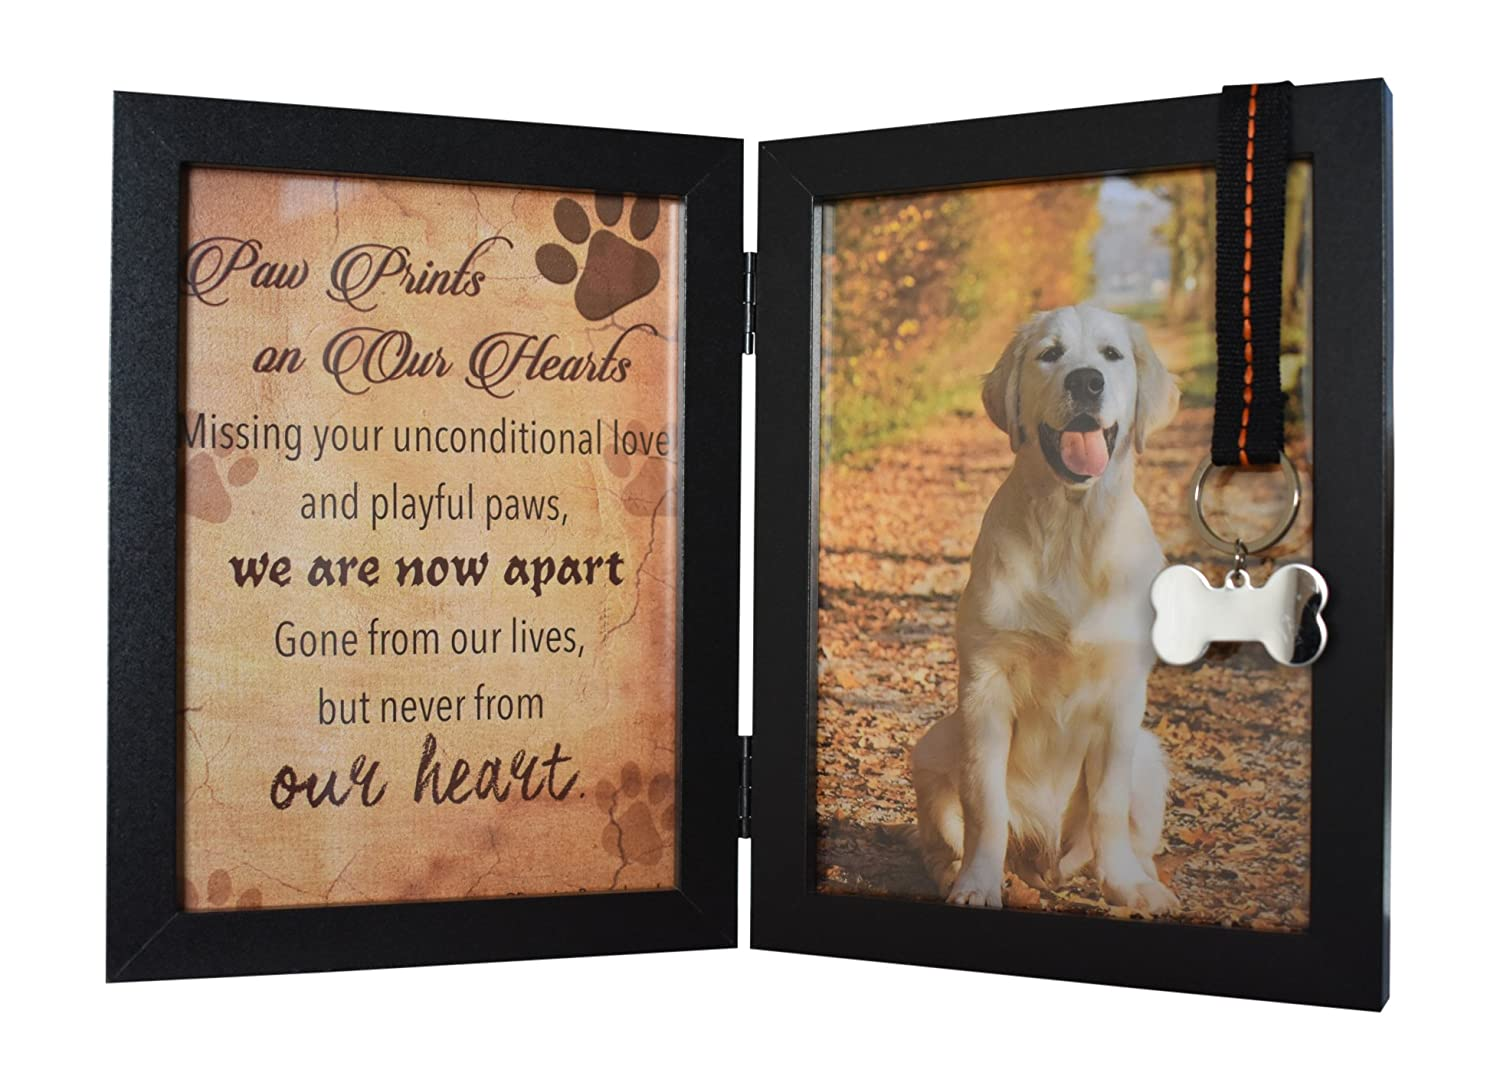 Pet urns memorial ideas pet memorial stones pet memorials pet memorial - Pet Memorial 5 X7 Picture Frame For Dog Or Cat With Ribbon And Tag Features A Folding Photo Frame And Sympathy Poem Loss Of Pet Gift